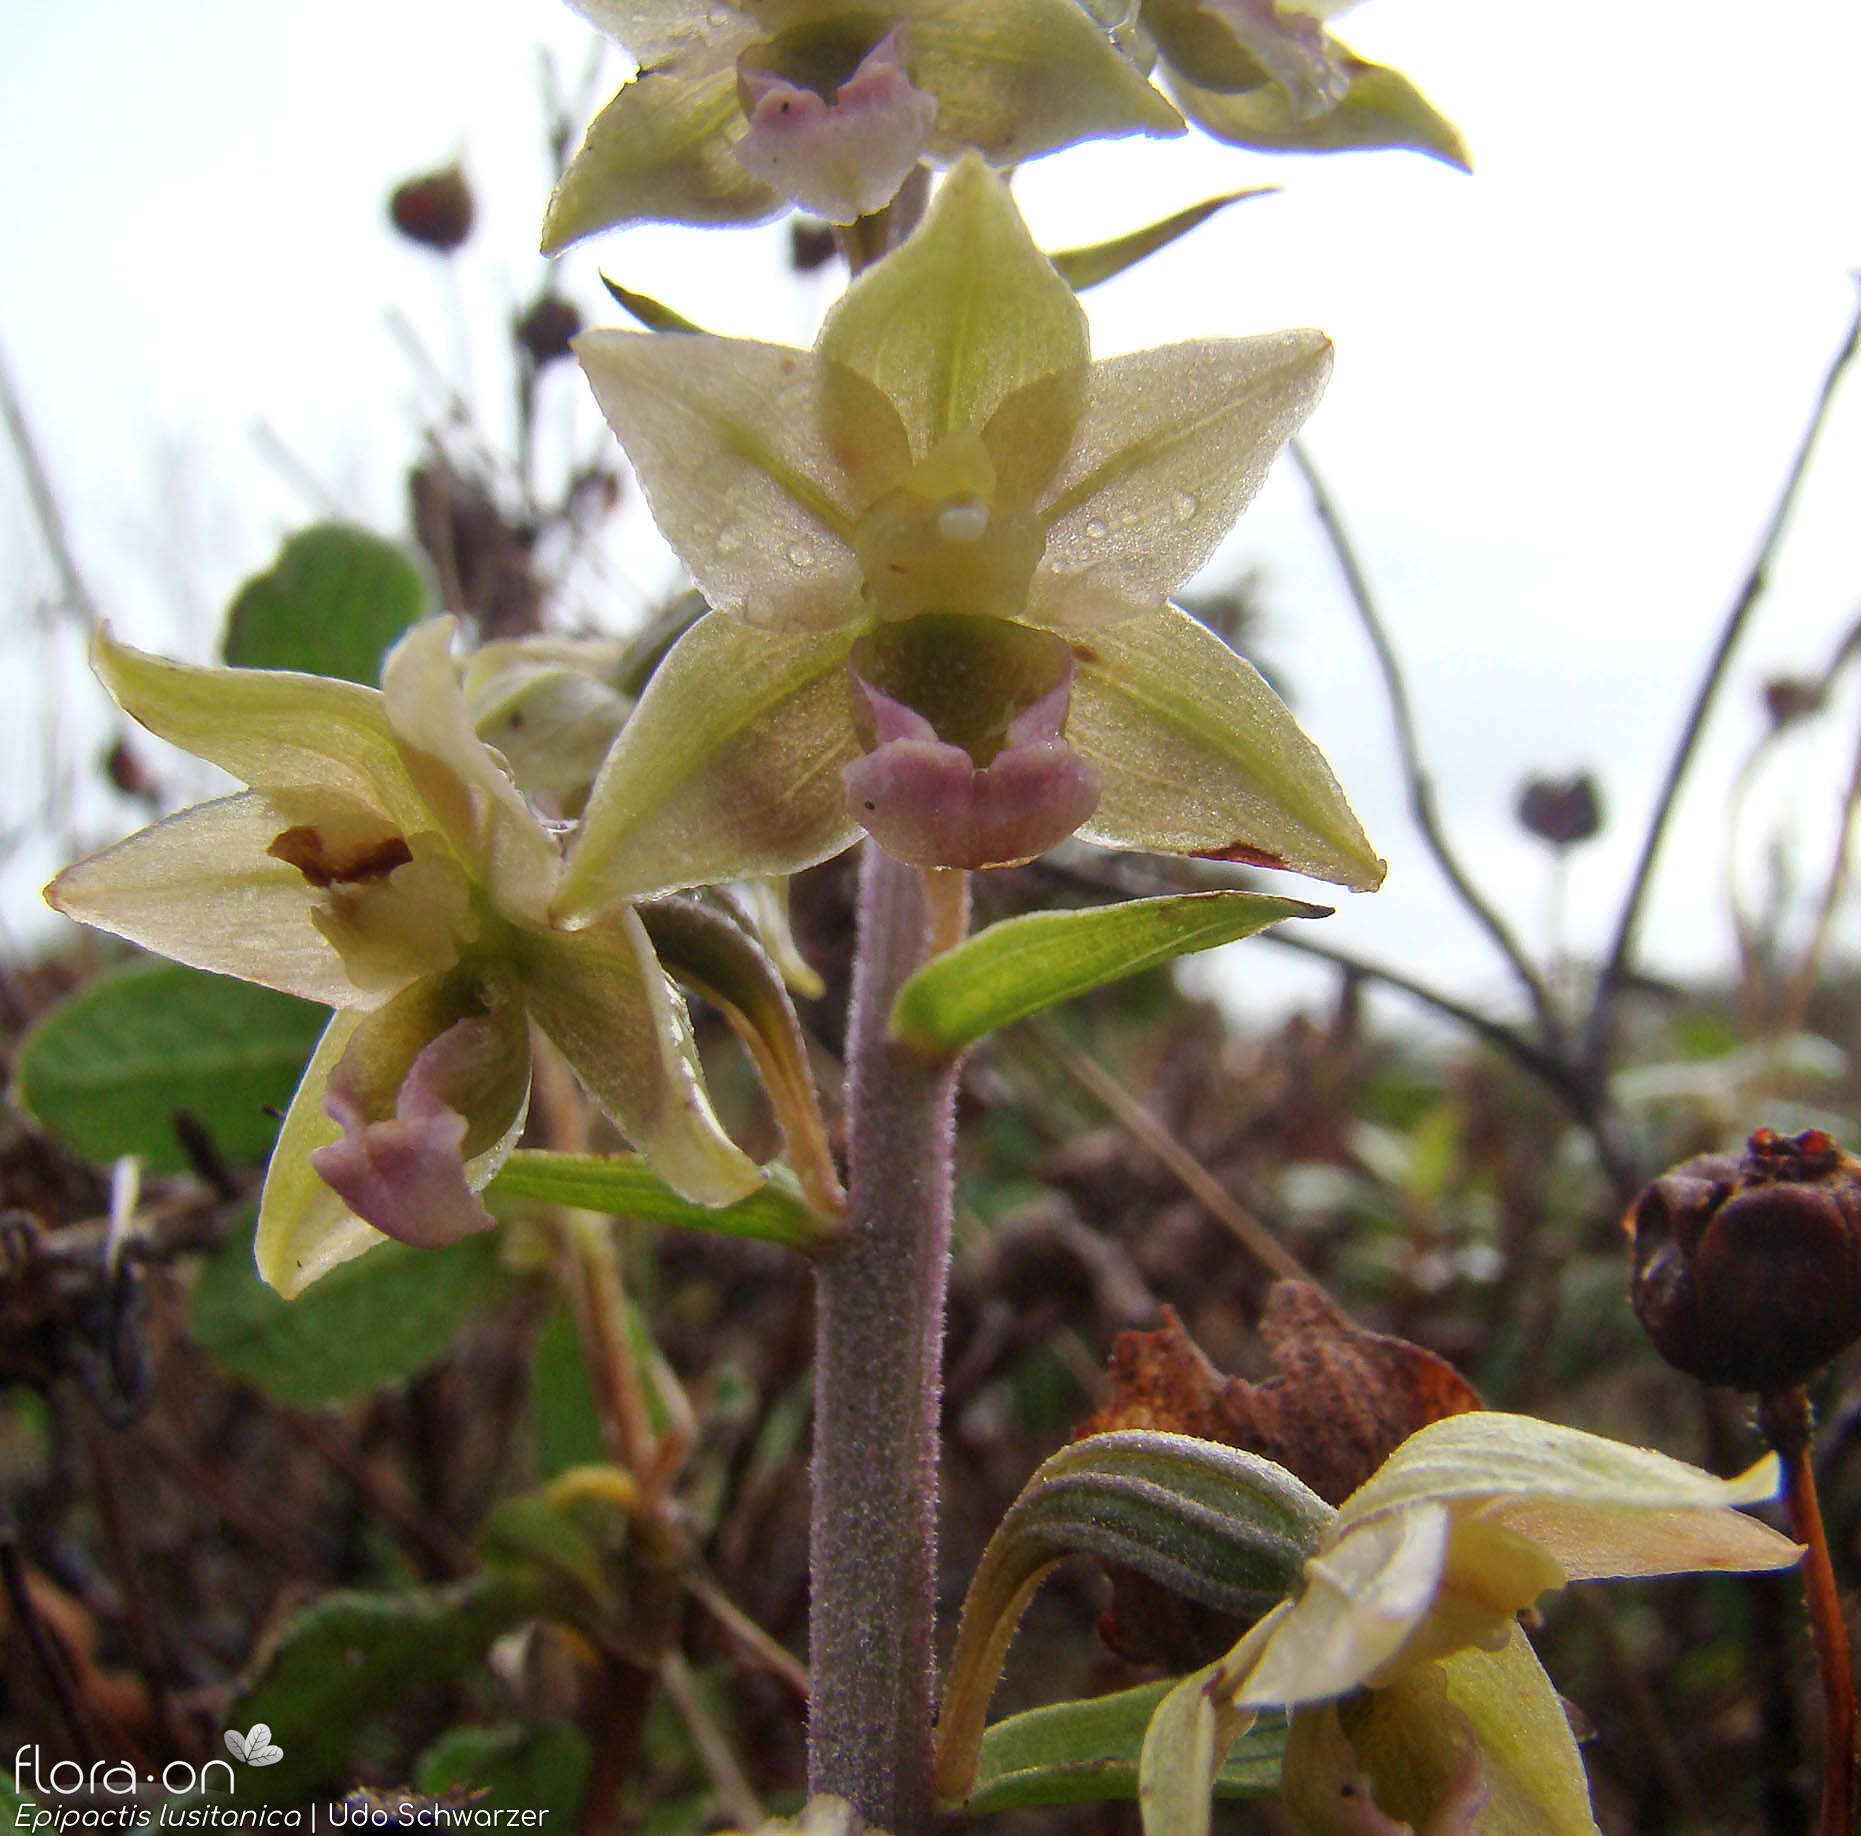 Epipactis lusitanica - Flor (geral) | Udo Schwarzer; CC BY-NC 4.0